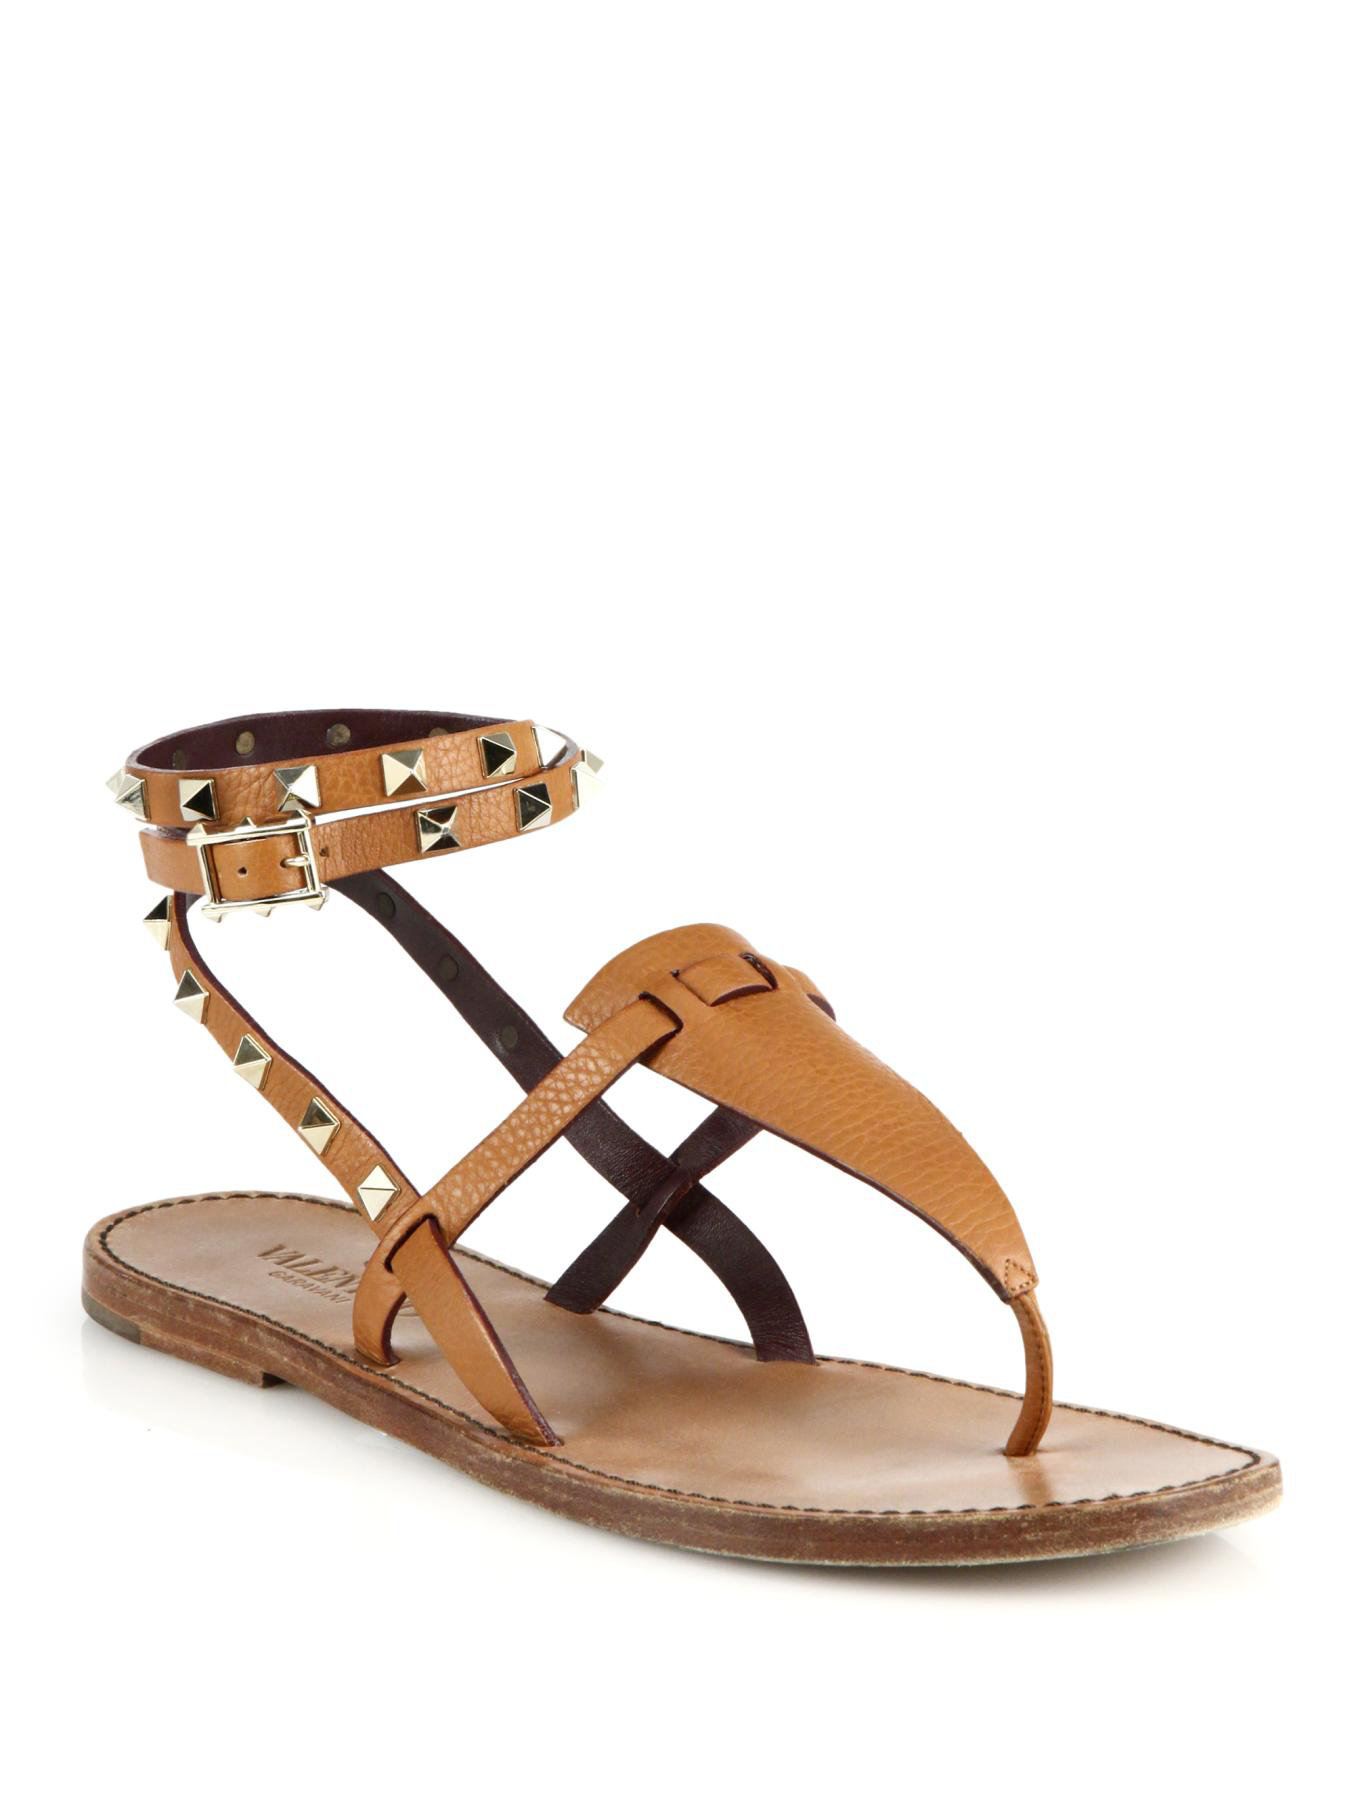 6467cb307b8d Lyst - Valentino Rockstud Wrap-around Strap Leather Thong Sandals in ...